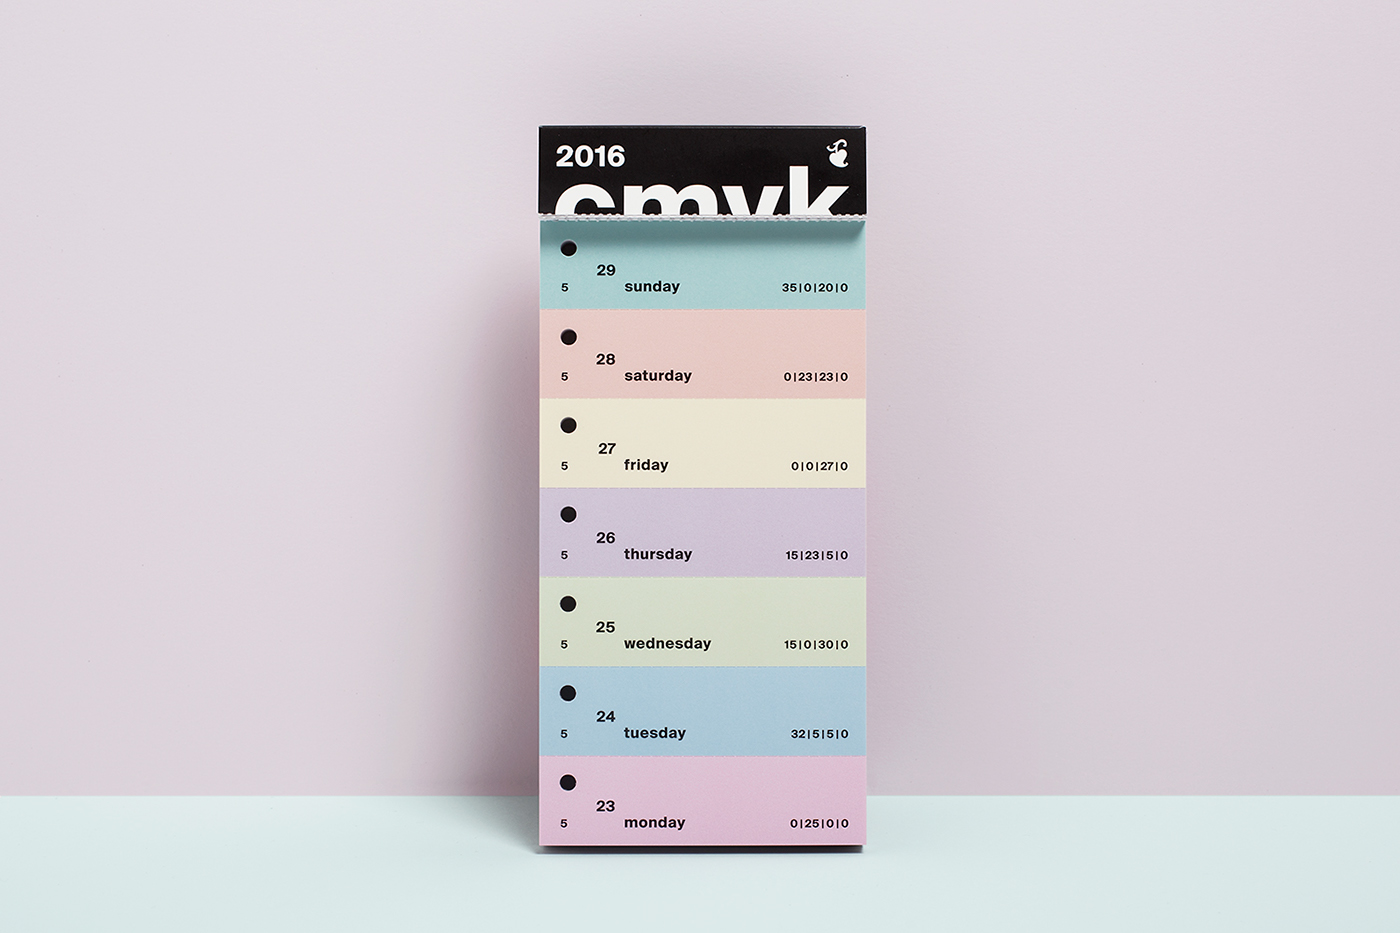 CMYK,color,swatch,calendar,calendar 2016,hermann schmidt,design,print,inspiration,creative,art,Creativity,colorful,colors